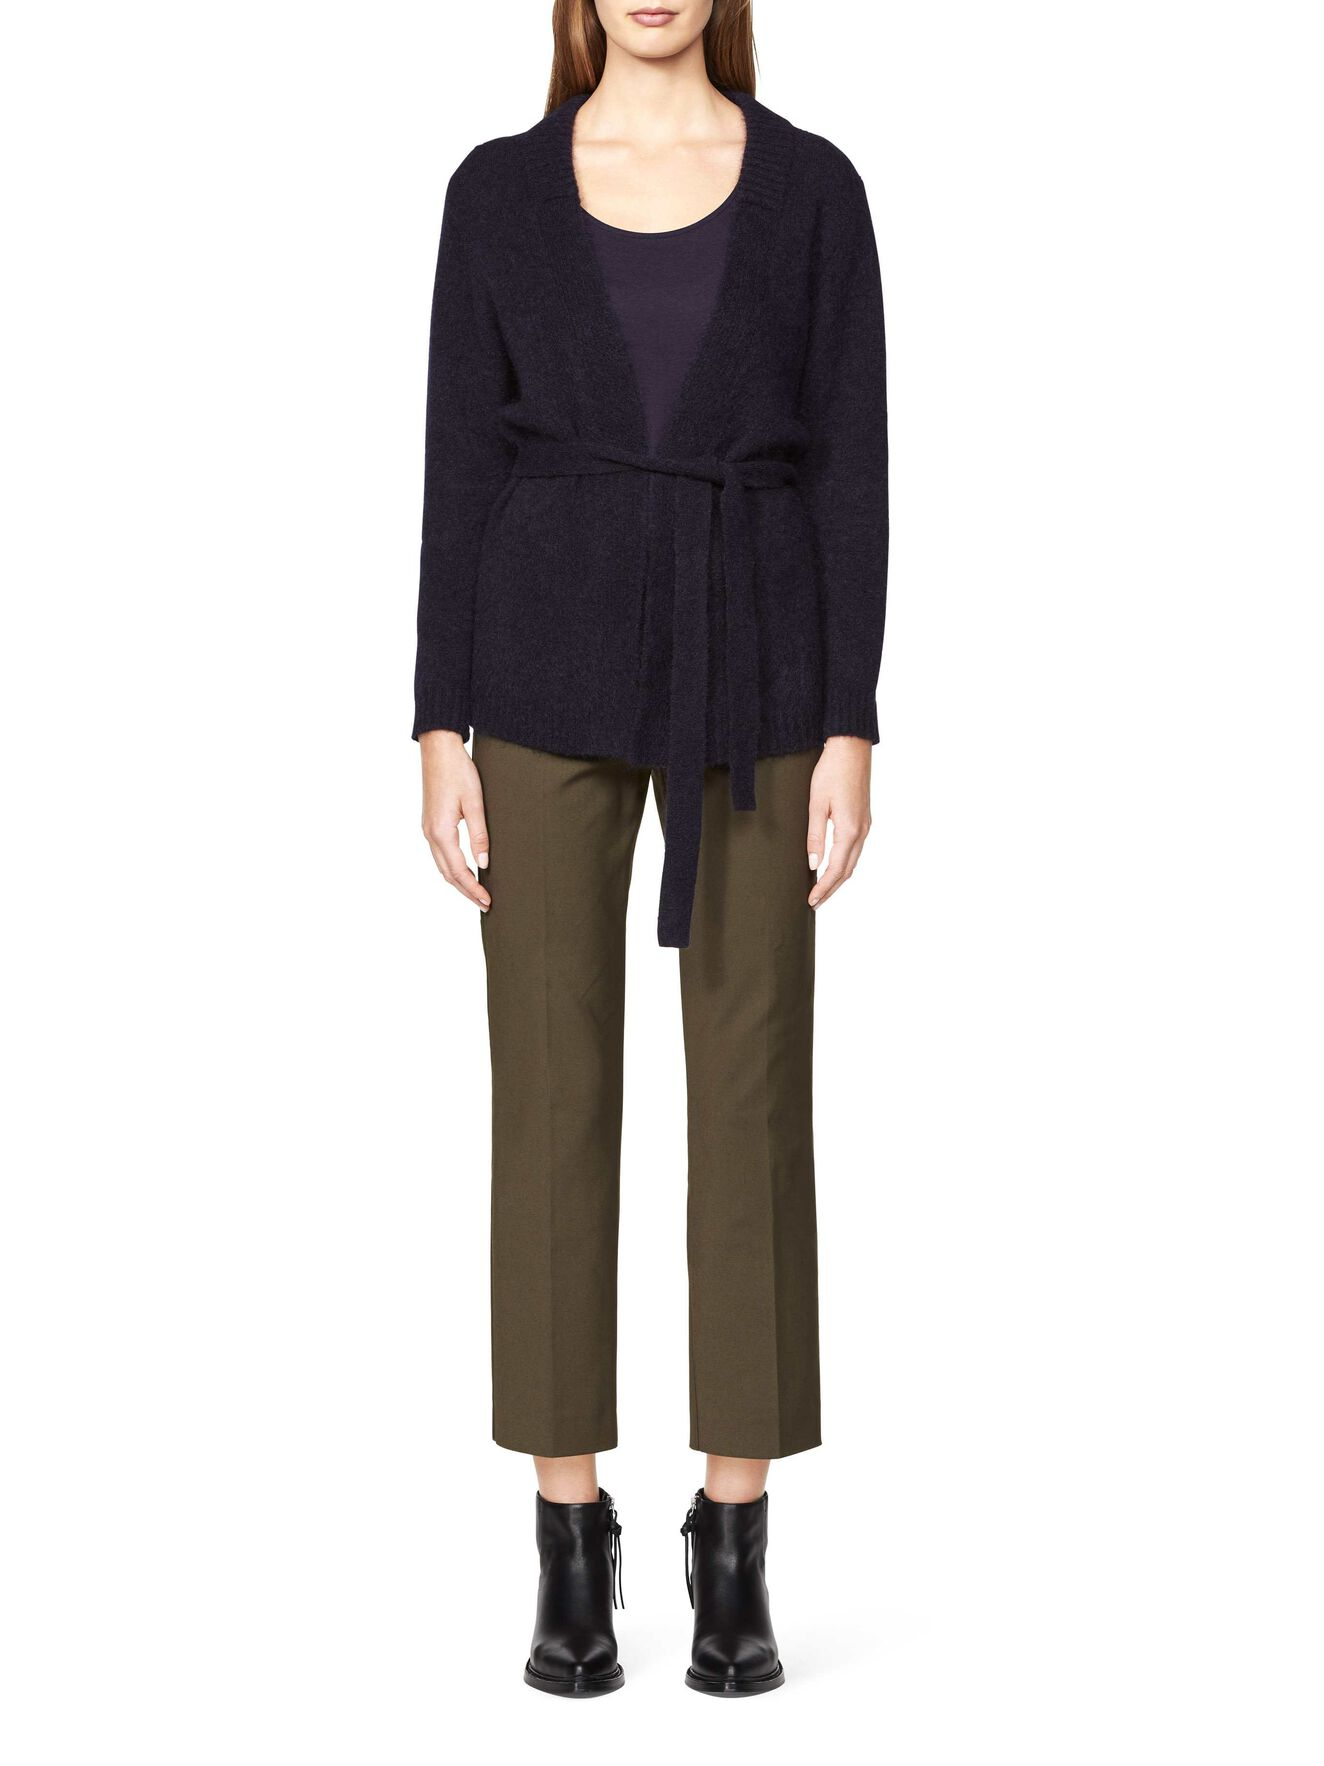 MIRZ TROUSERS in Utility Green from Tiger of Sweden